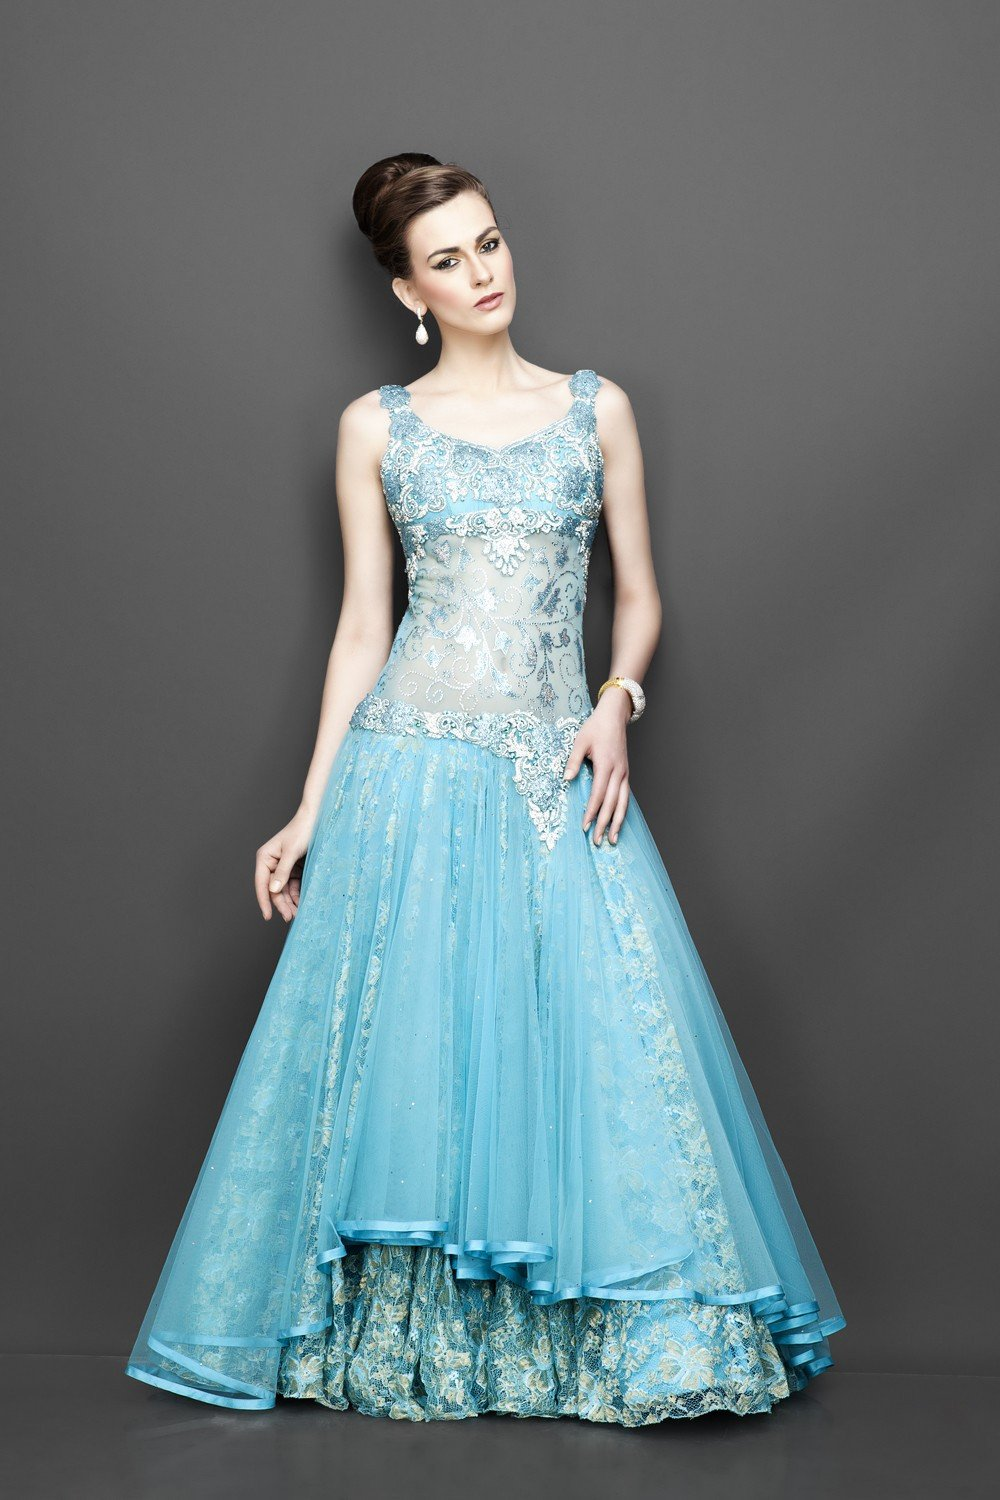 Best Tips To Opt For Indo-Western Gown For Wedding! - The ...